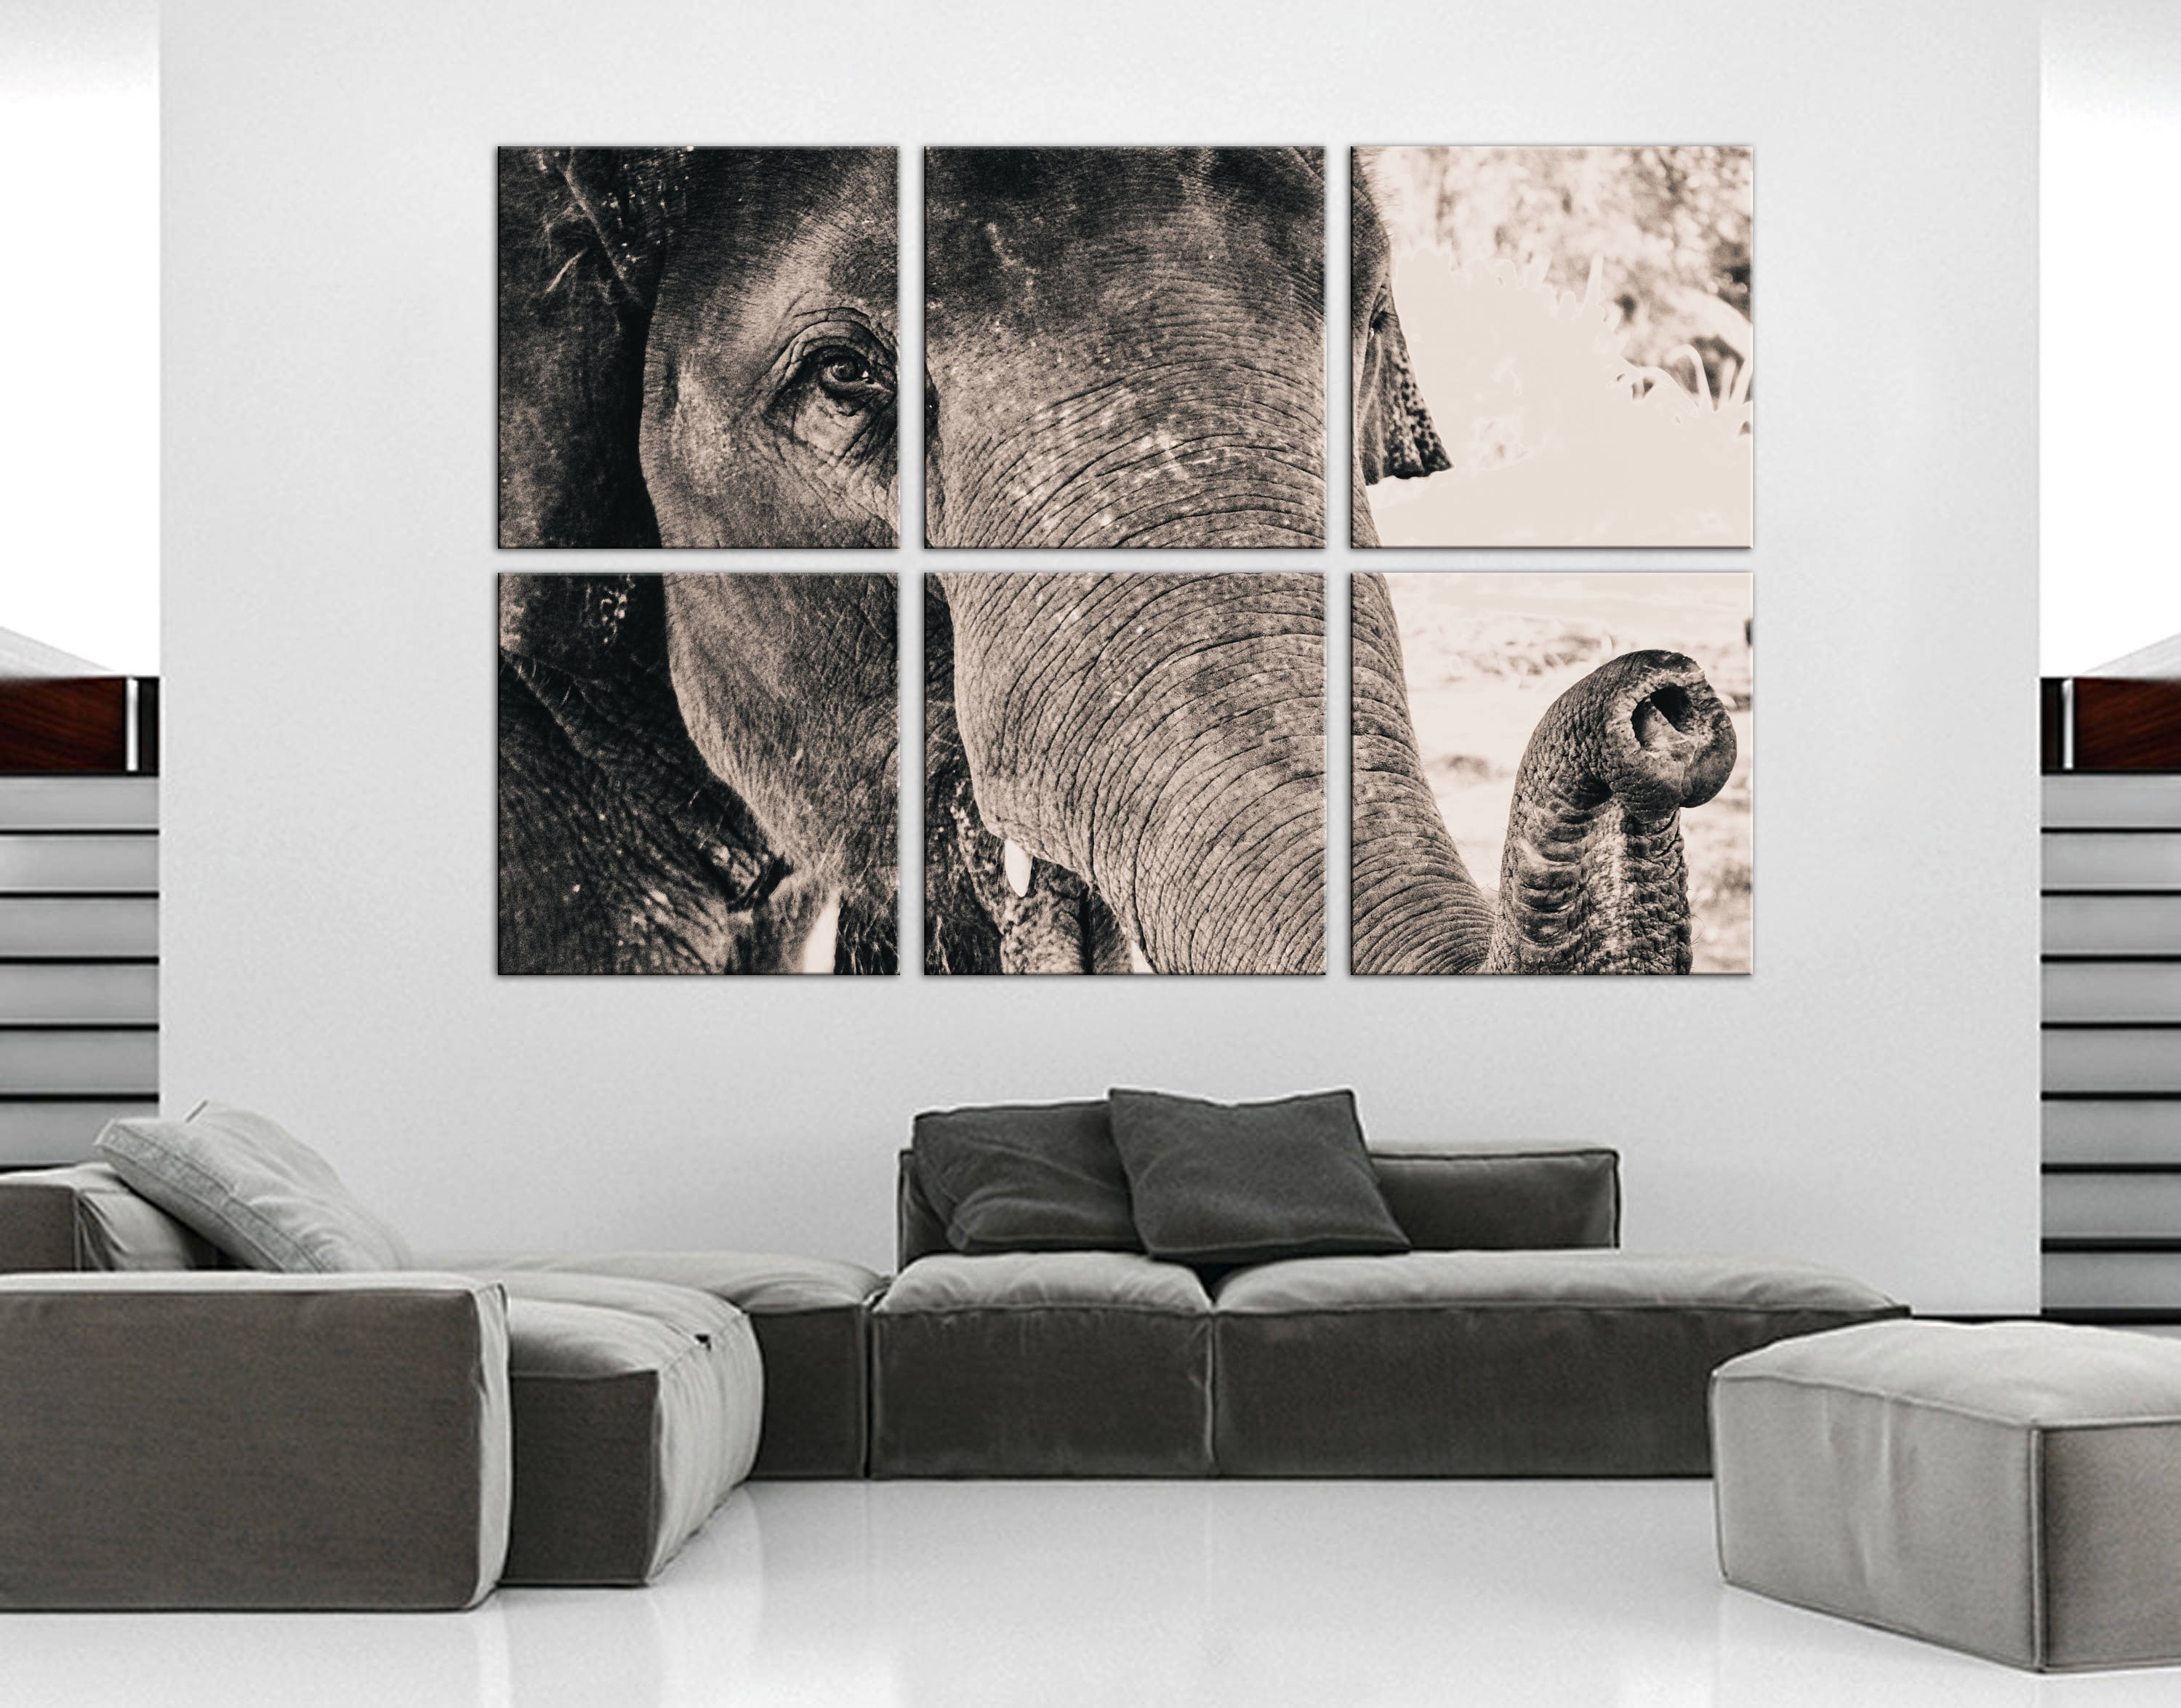 Elephant Wall Decor Canvas Elephant Wall Art Canvas Art Home Decor With Regard To Newest Queensland Canvas Wall Art (View 8 of 15)